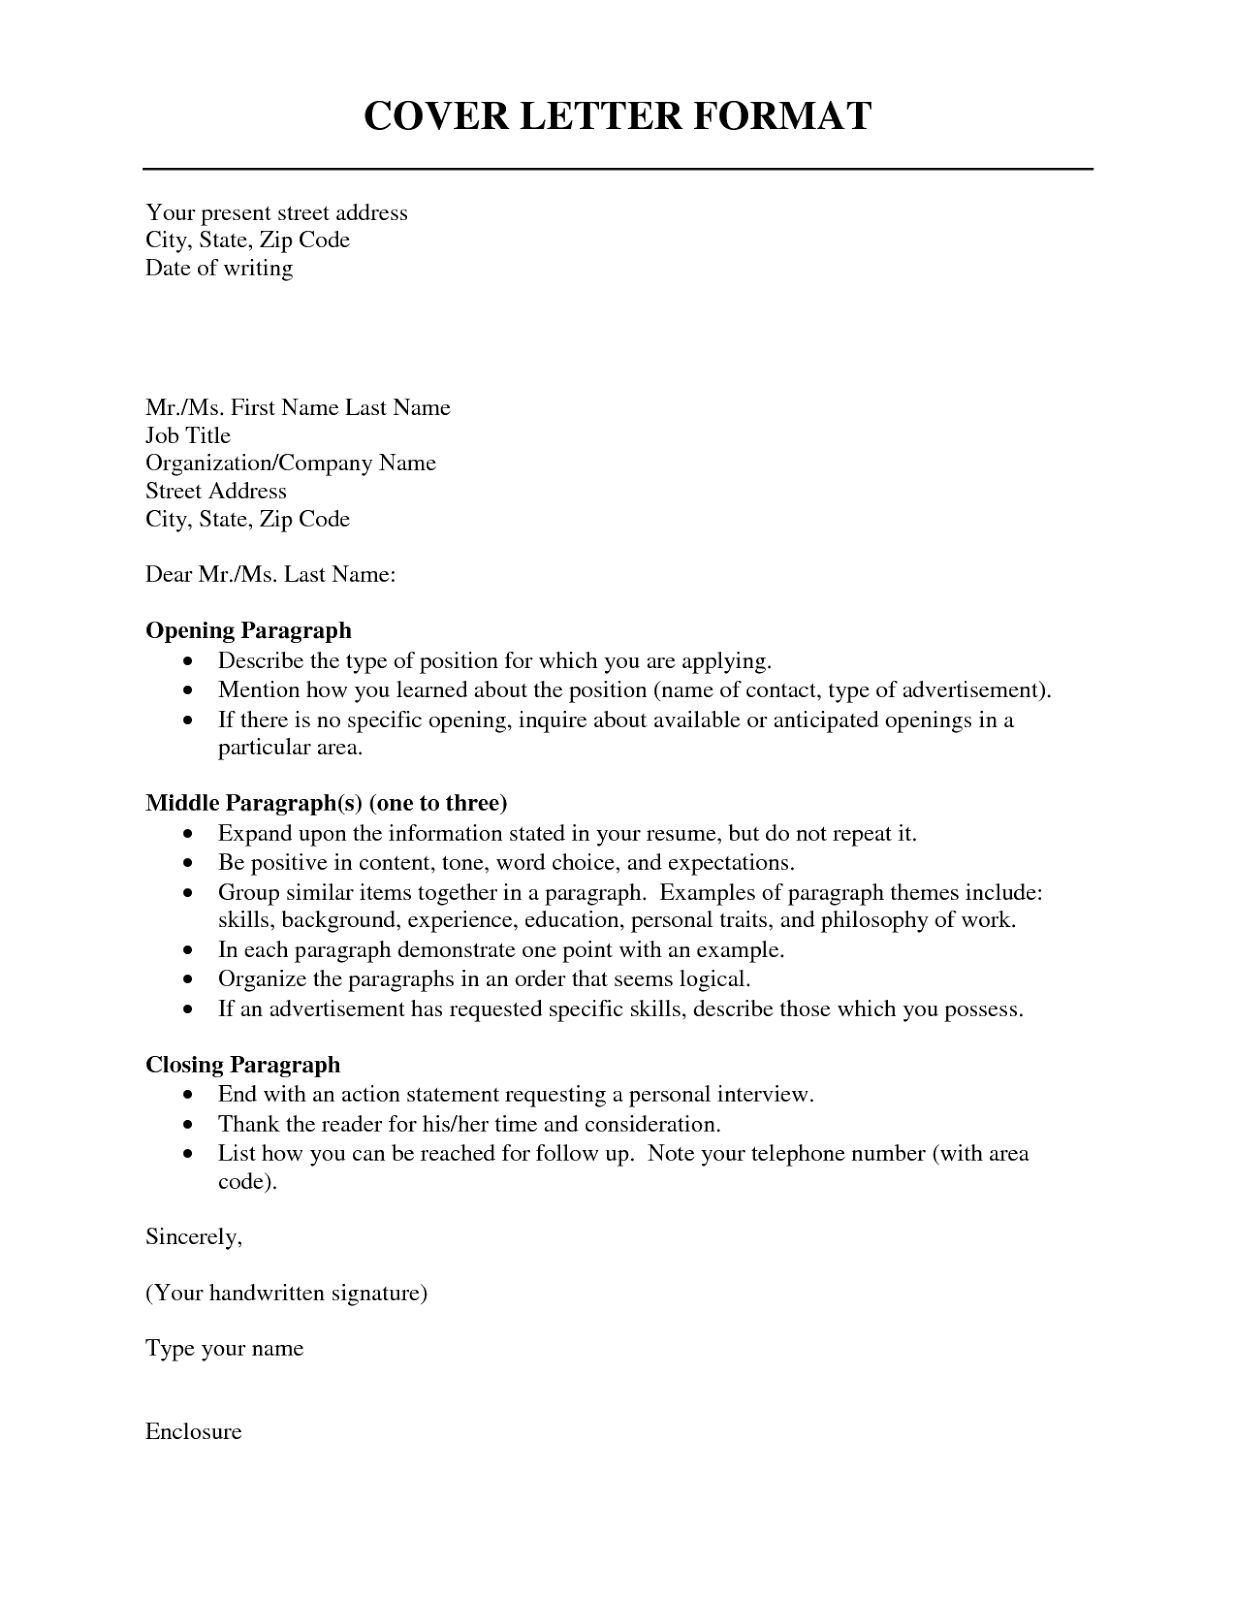 Cover Letter Unknown Recipient Sample Format Business Greeting